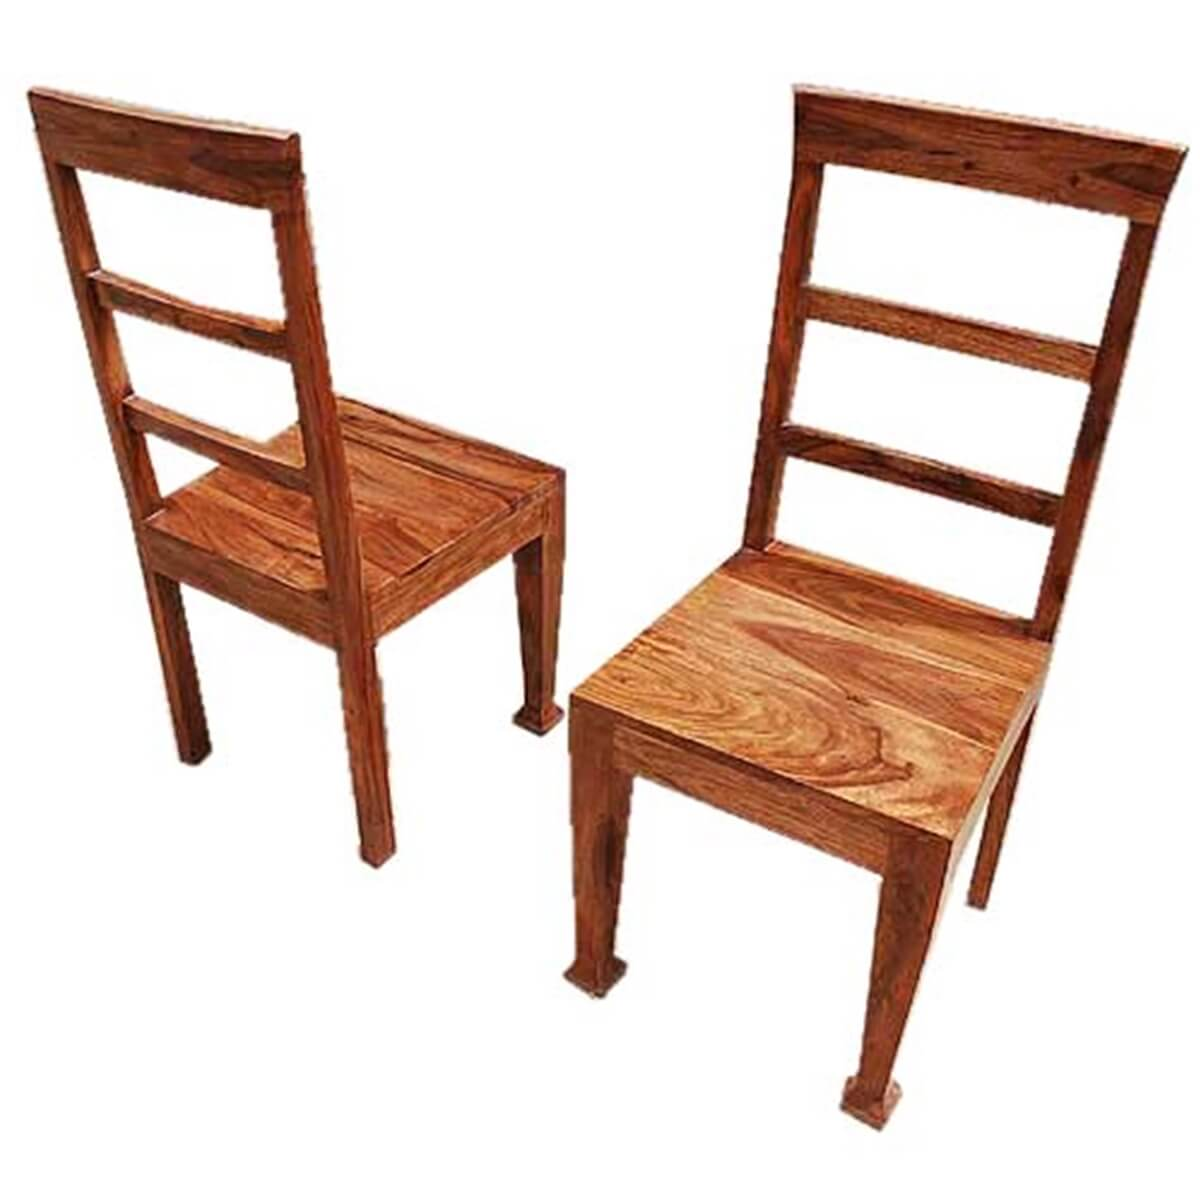 Dining Chairs Set Rustic Furniture Solid Wood Dining Table And Chair Set